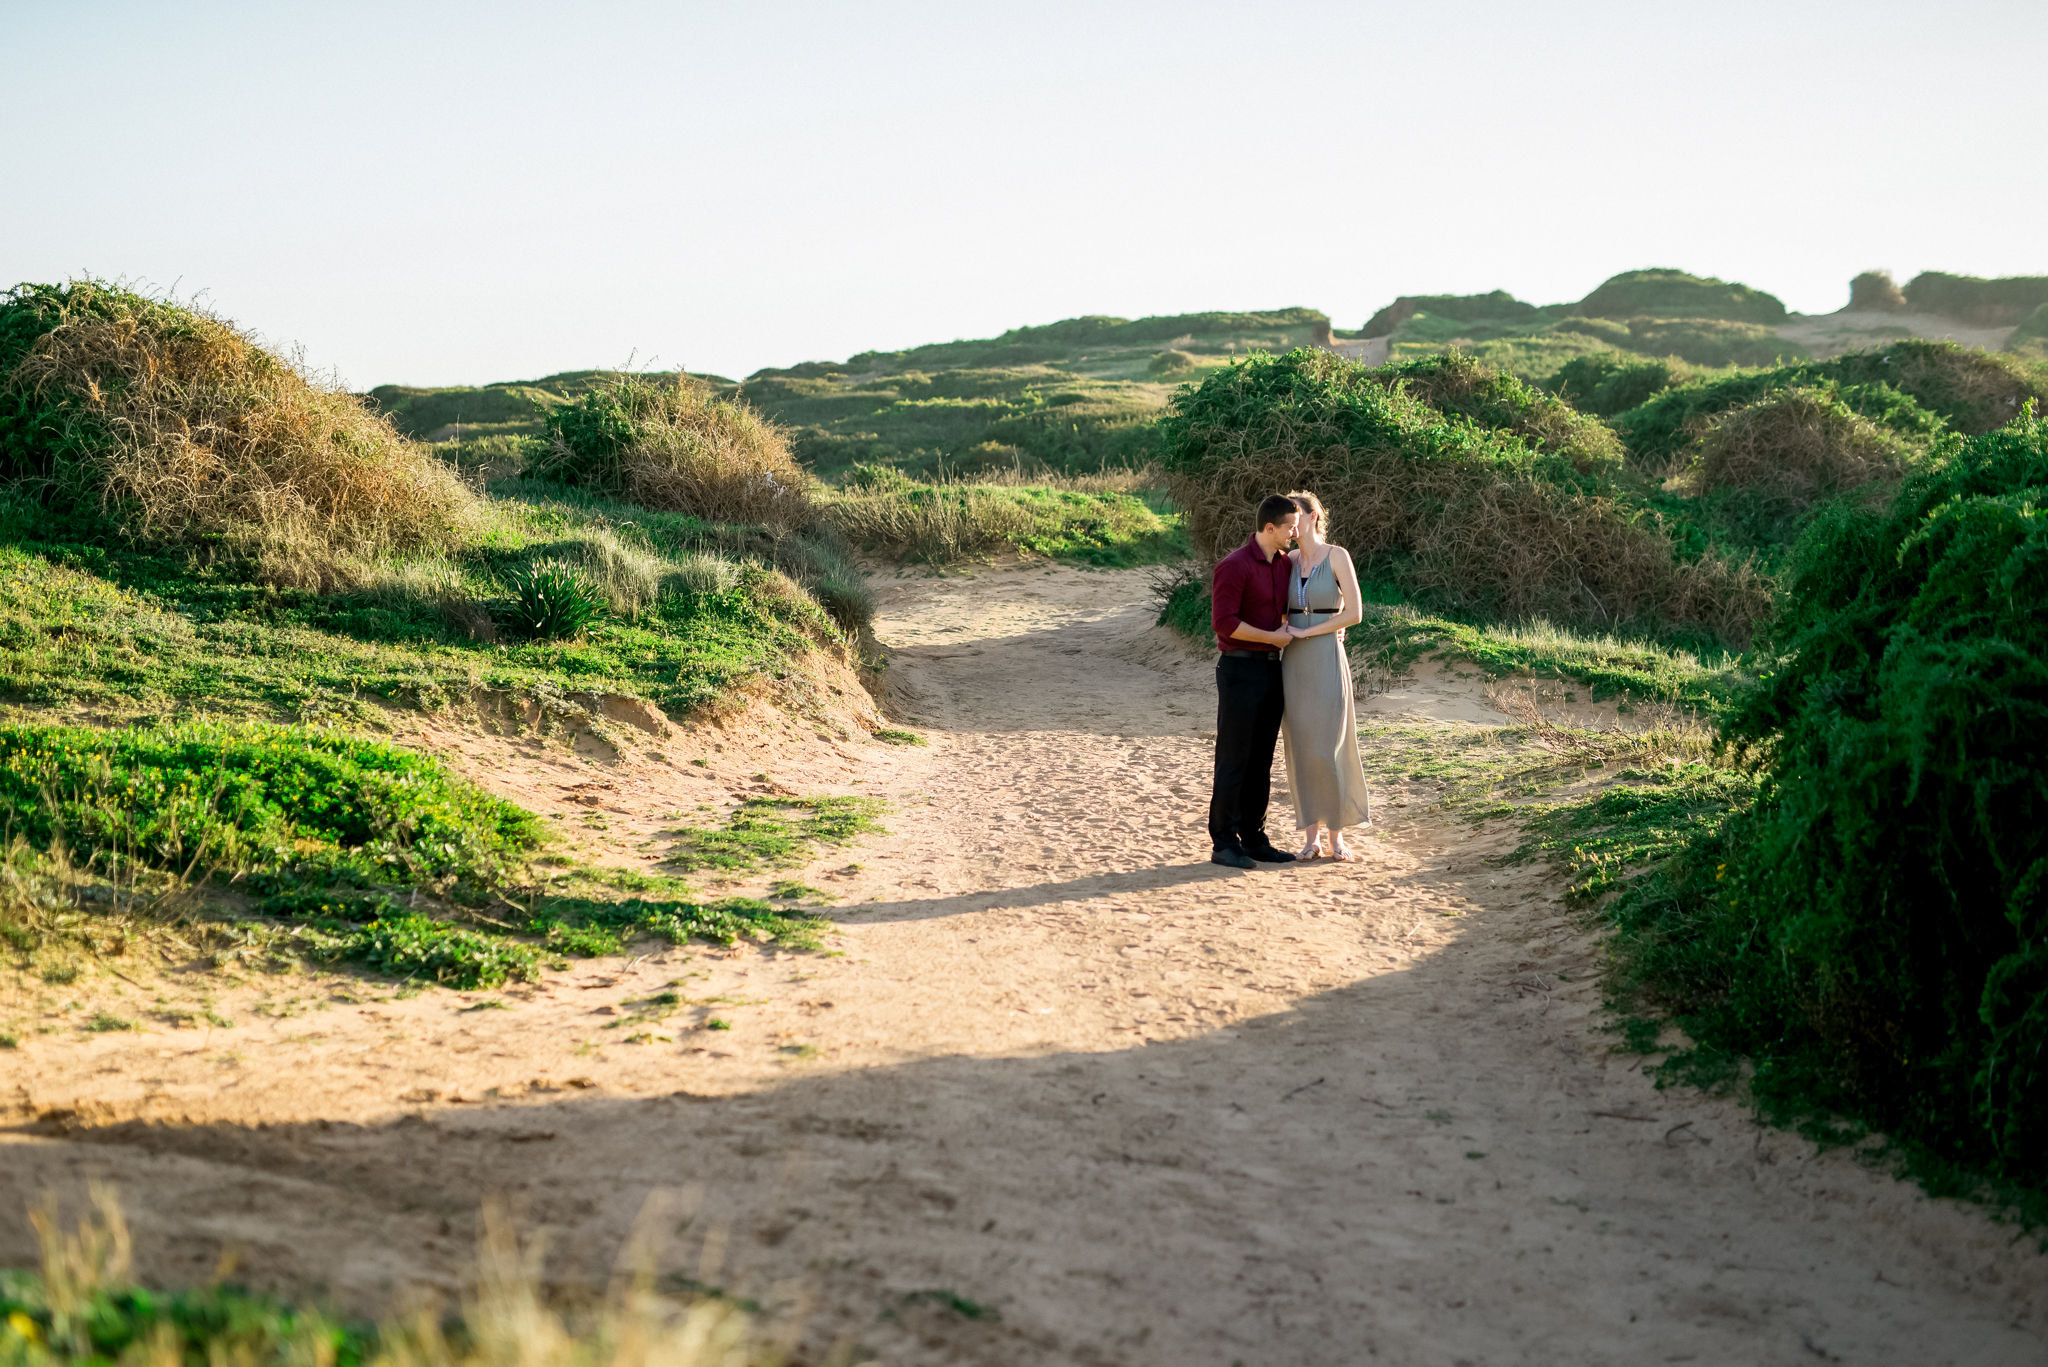 Cliffside-beach-engagement-session-hadera-israel-kate-giryes-photography-9169.jpg